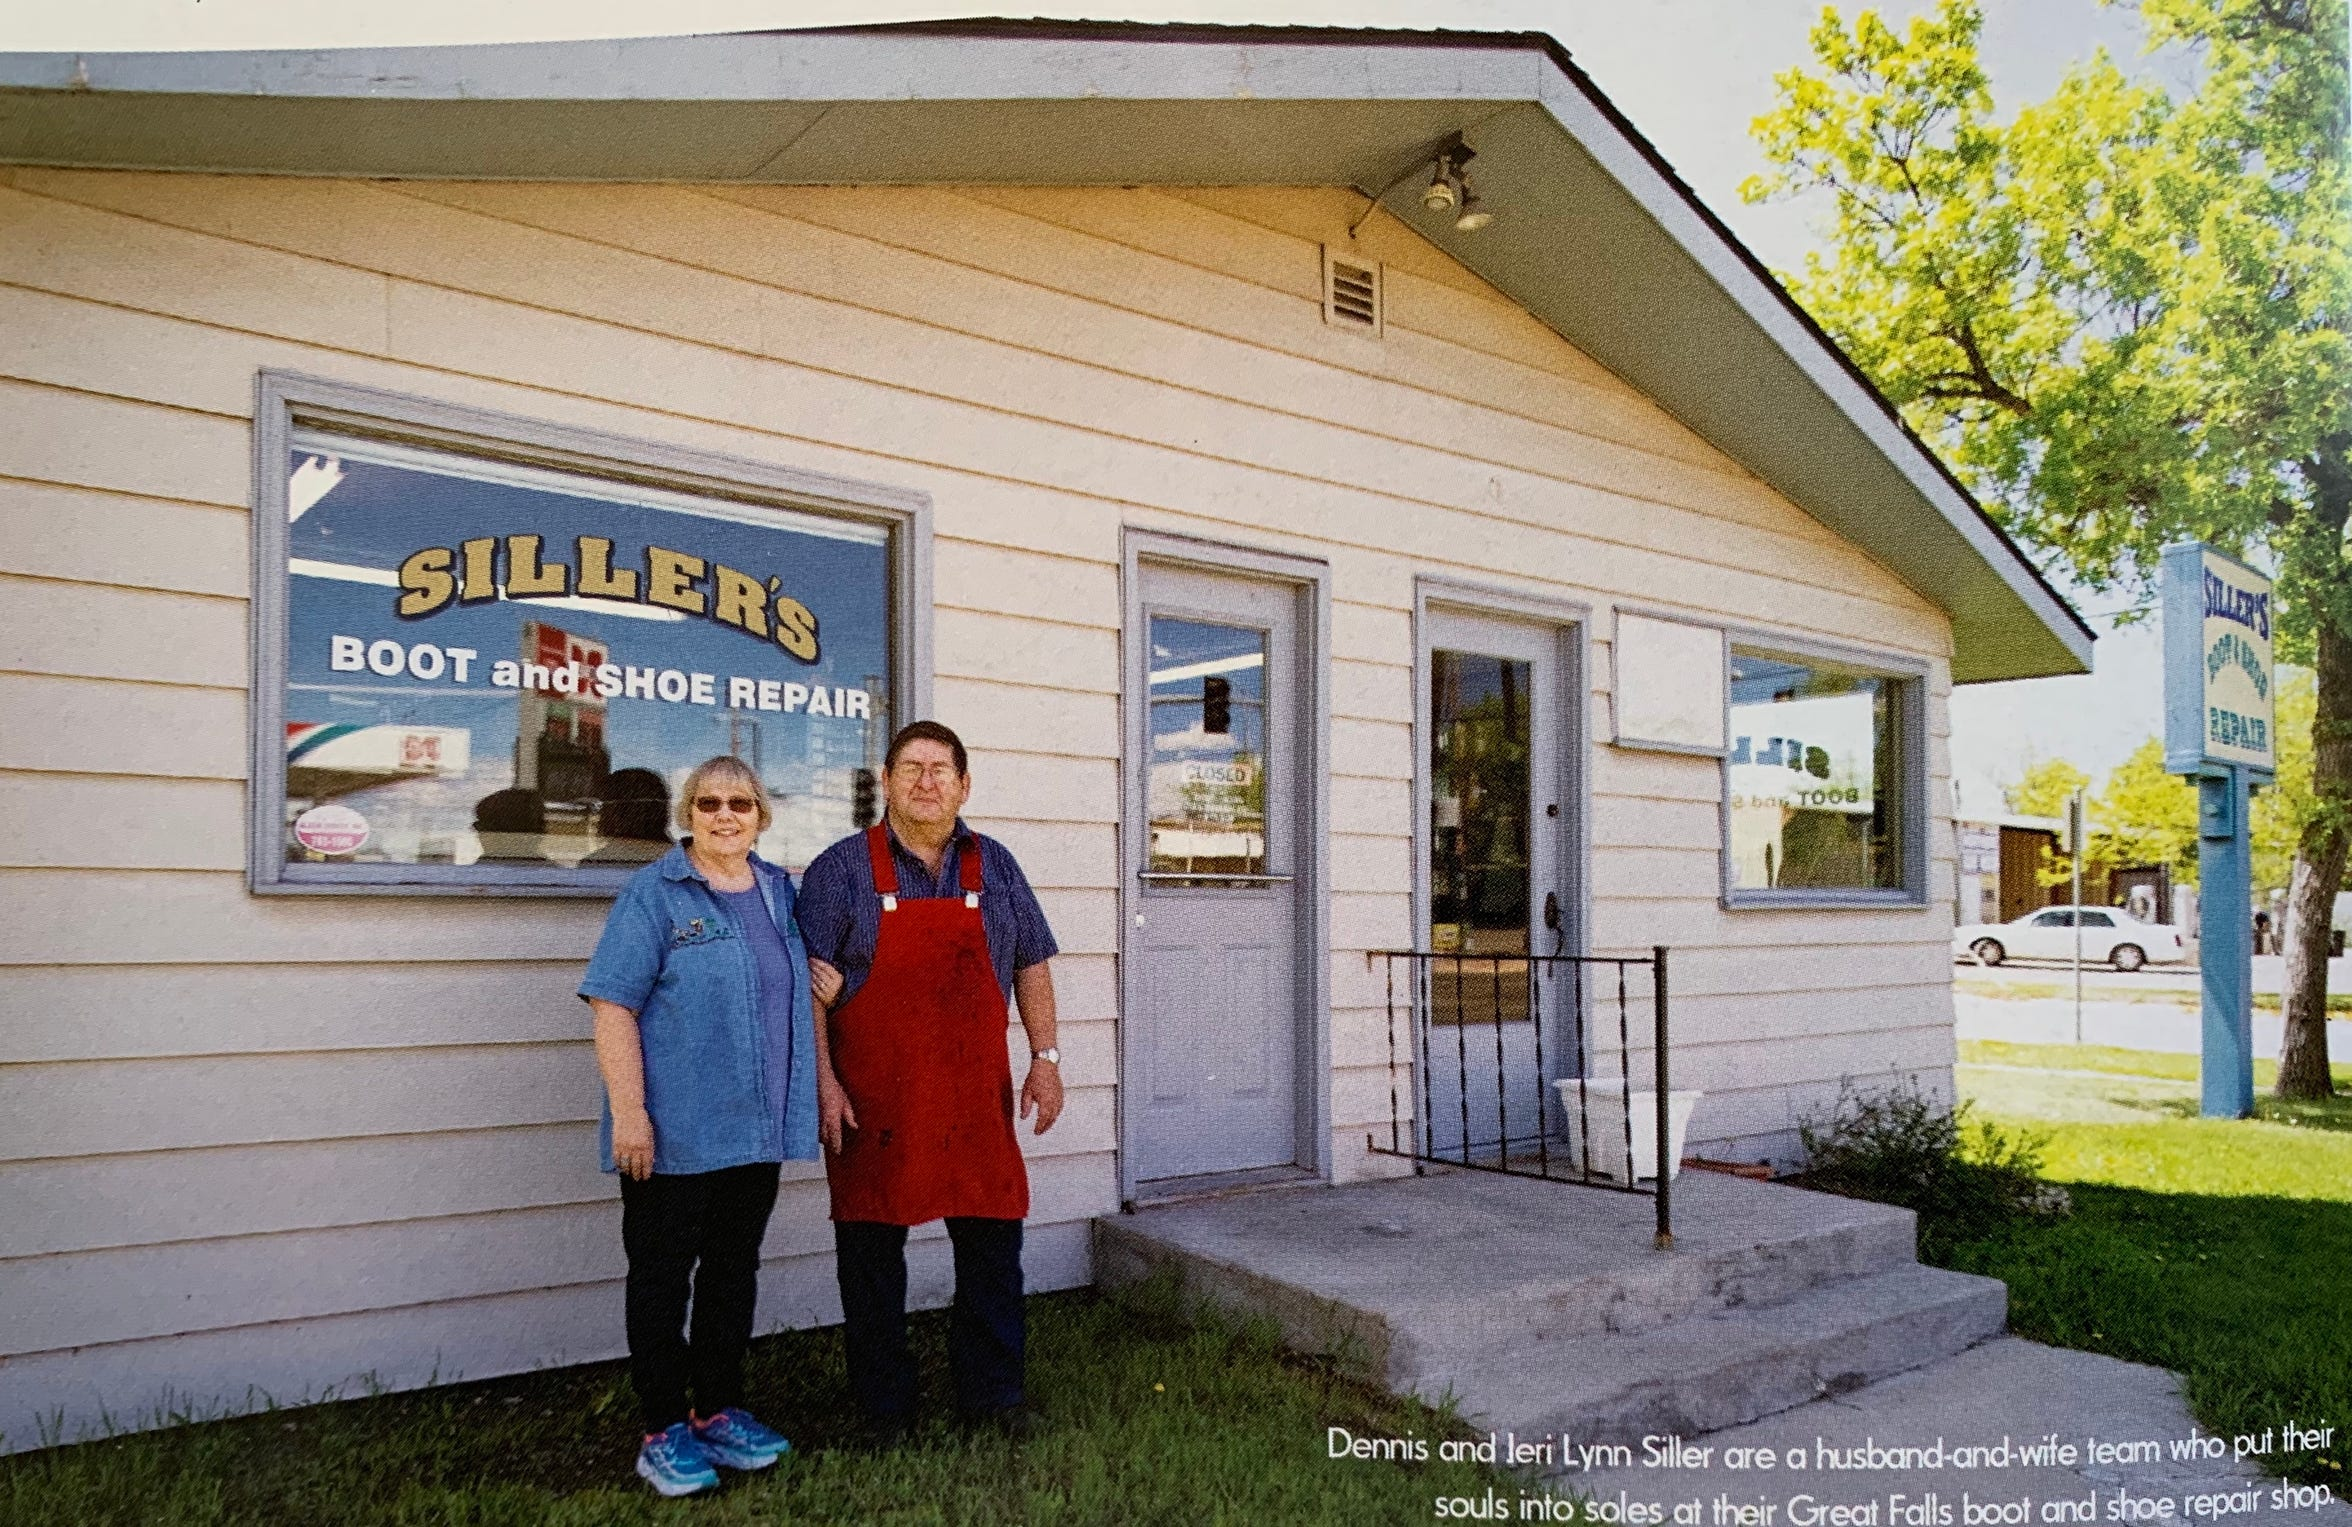 Dennis and Jeri Siller pictured outside of Siller's Boot and Shoe Repair shop.